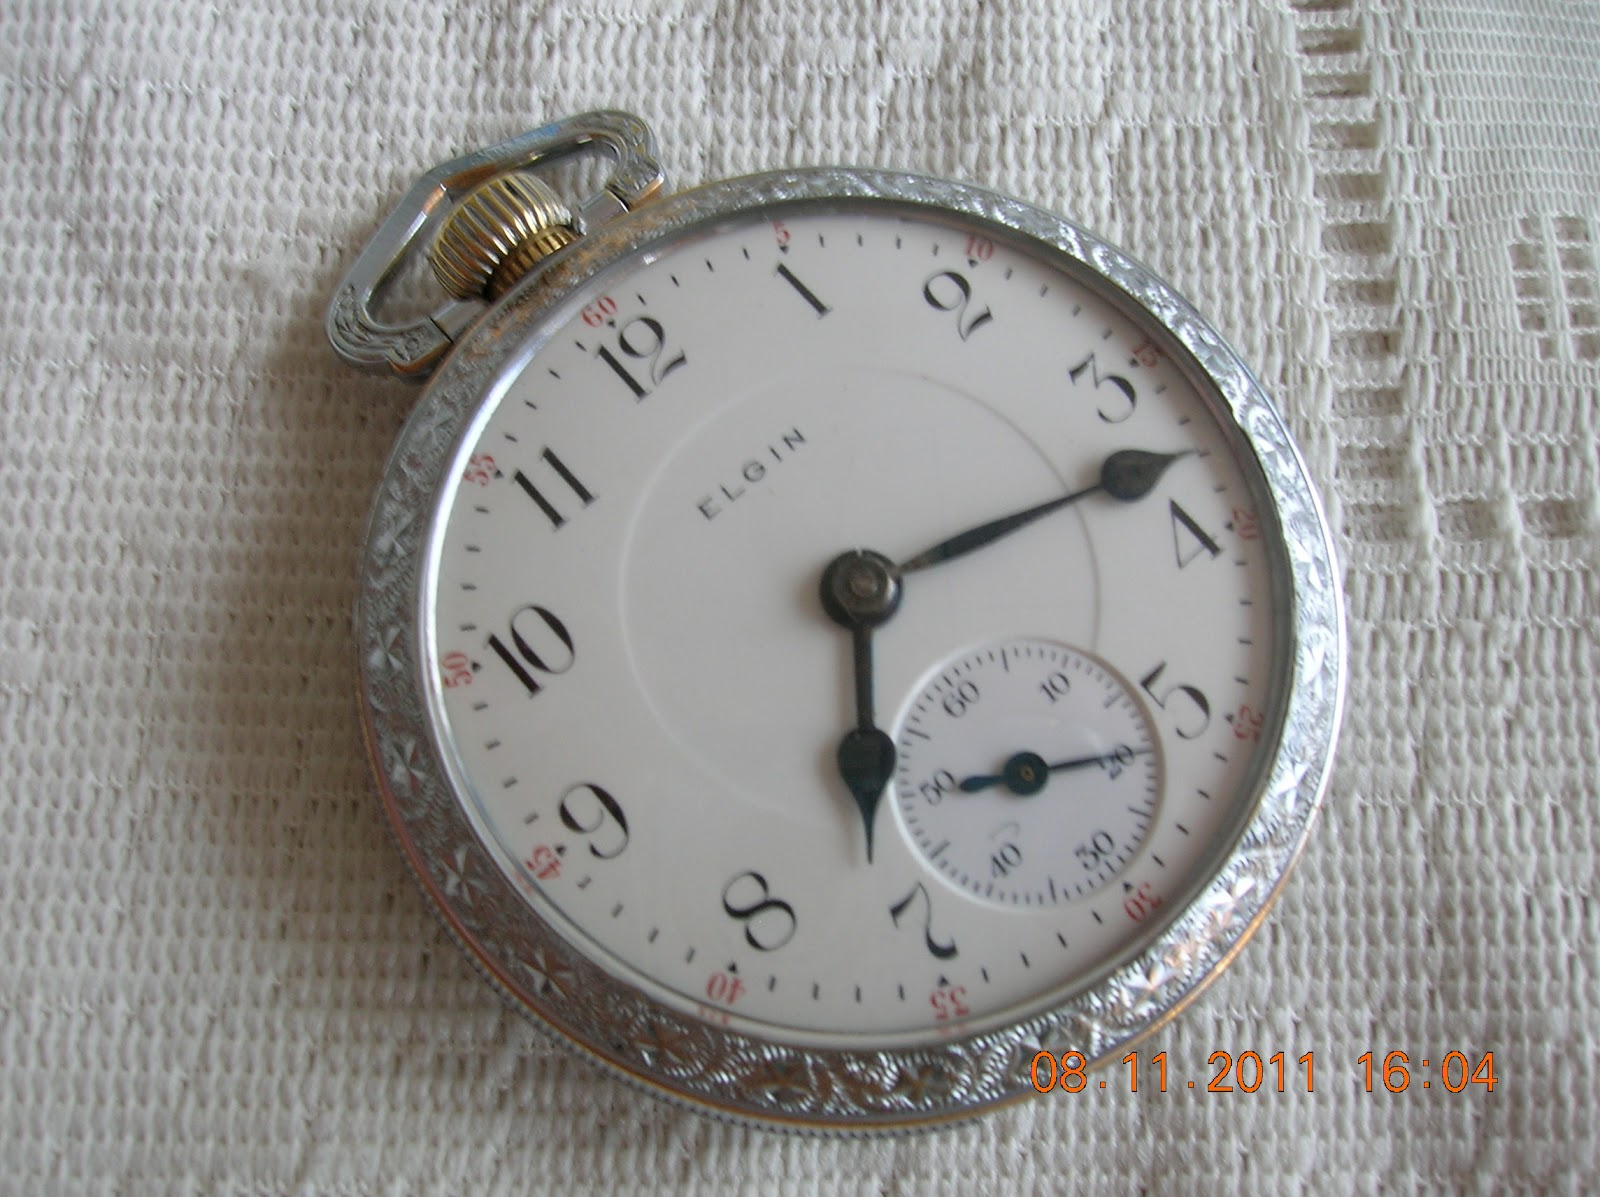 Dating elgin pocket watch